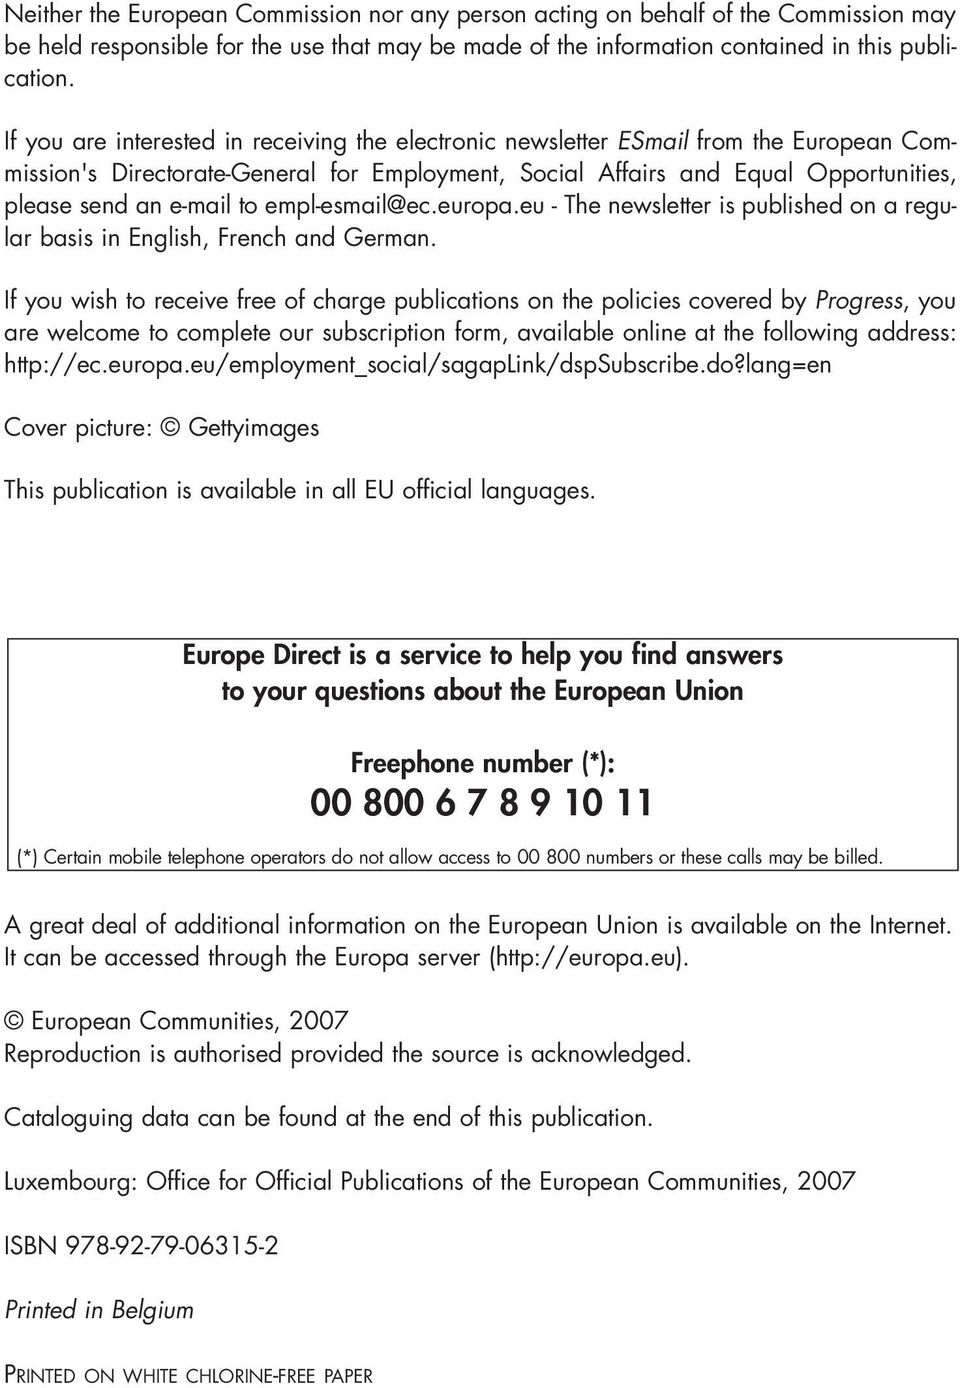 empl-esmail@ec.europa.eu - The newsletter is published on a regular basis in English, French and German.